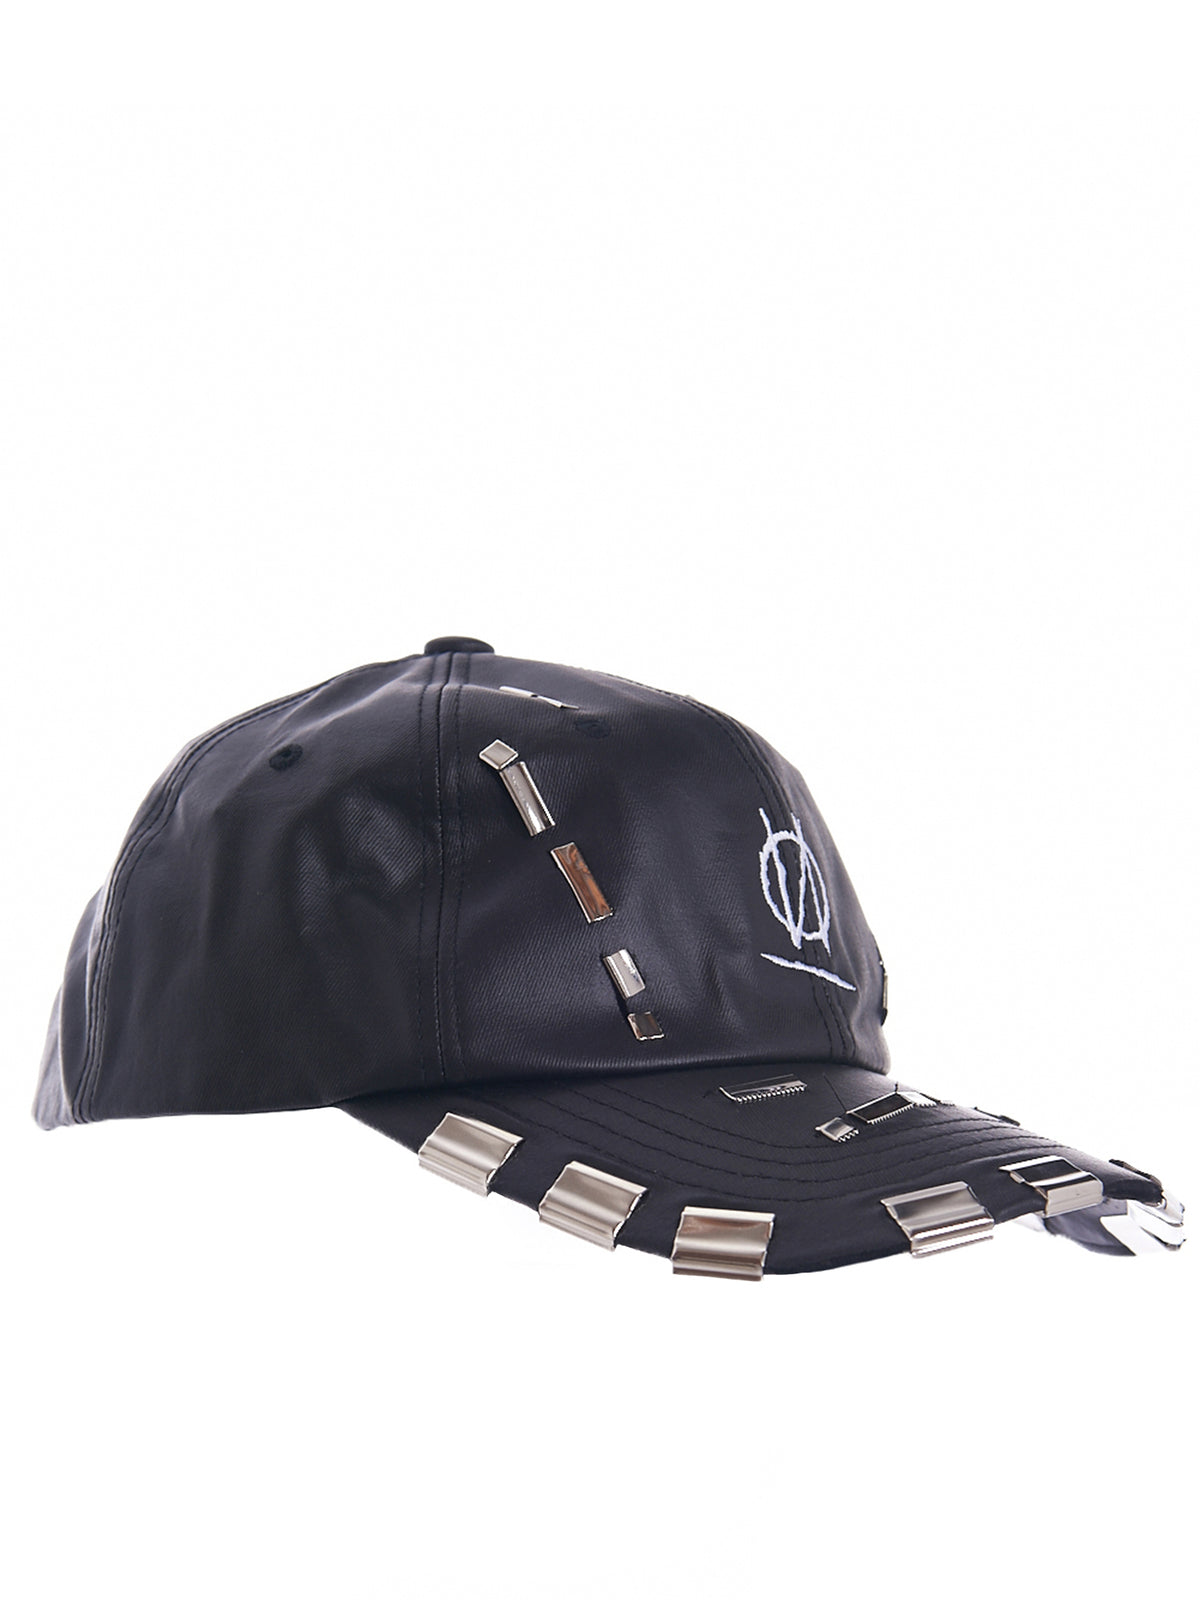 99%IS Logo Steel Cap - Hlorenzo Front